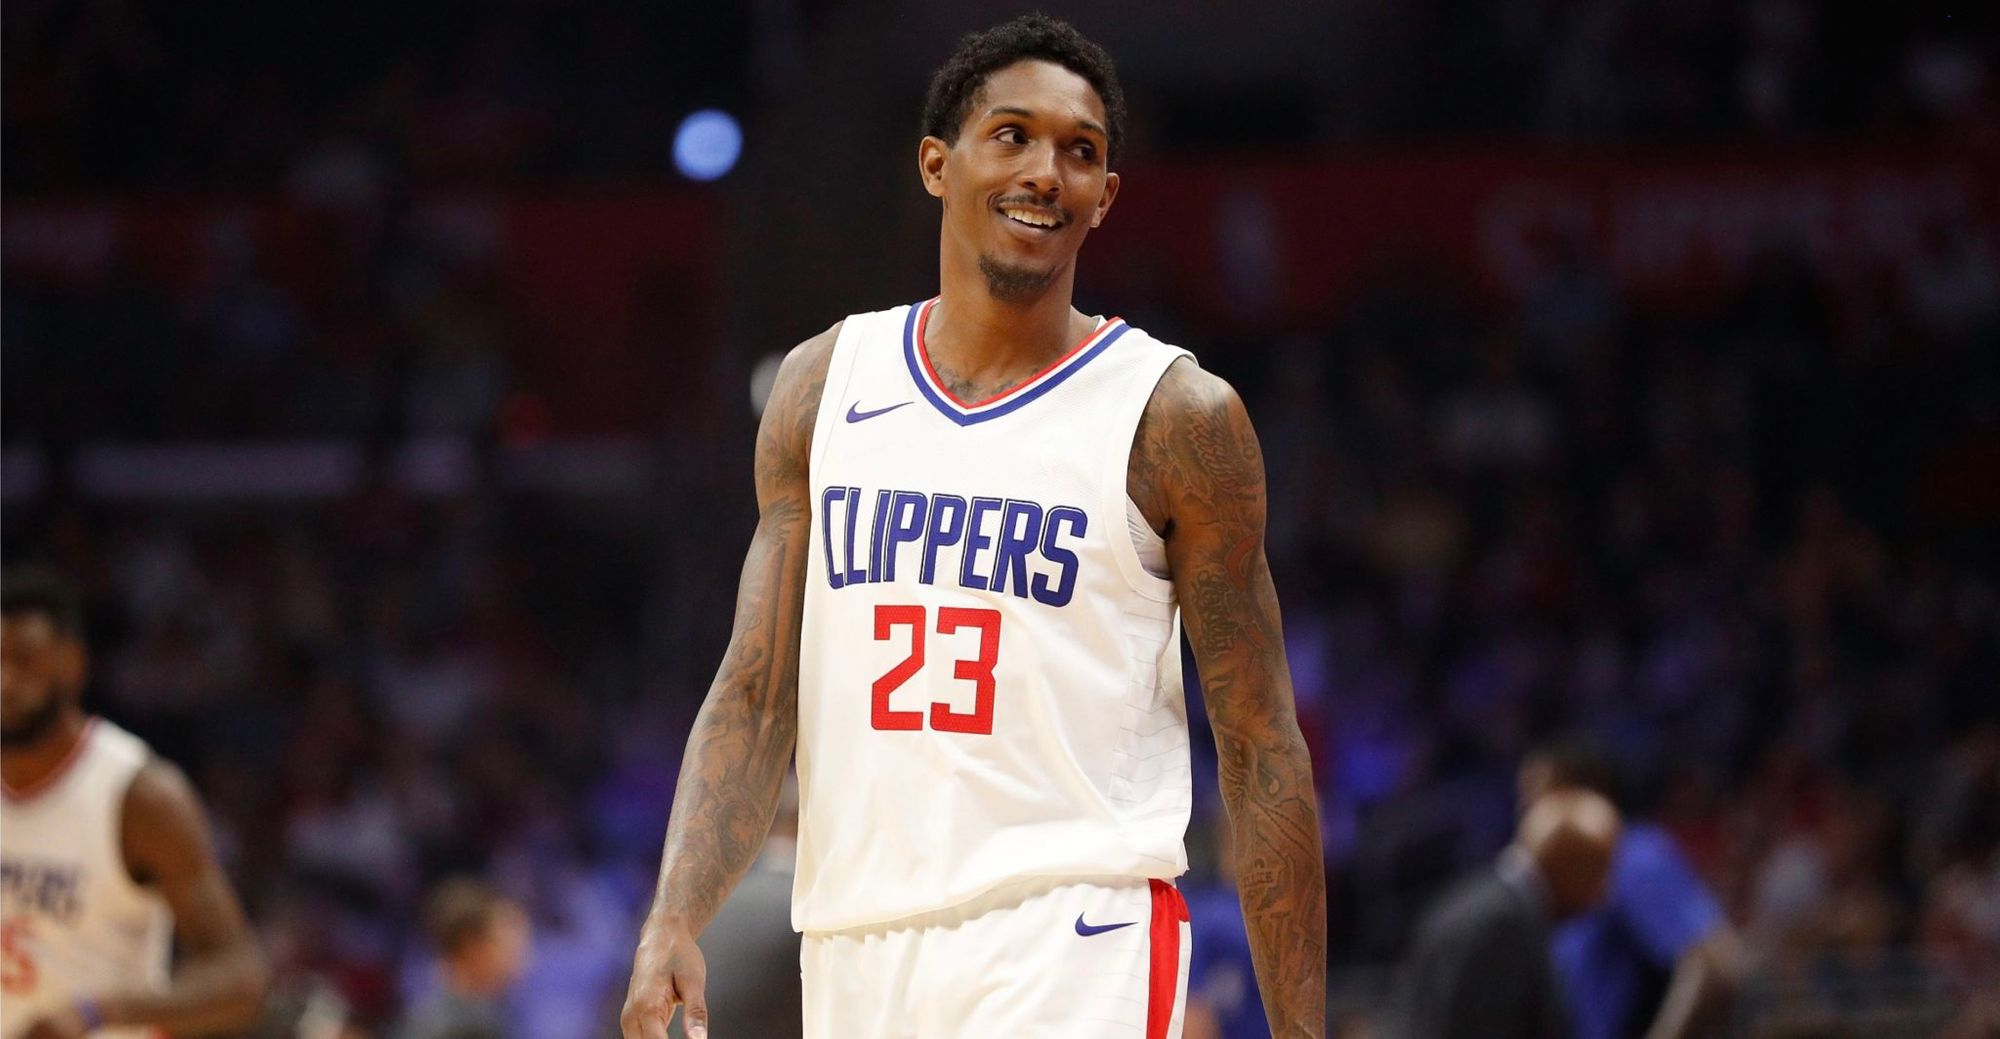 NBA Trade Buzz: Should The Clippers Move Lou Williams Before Trade Deadline?